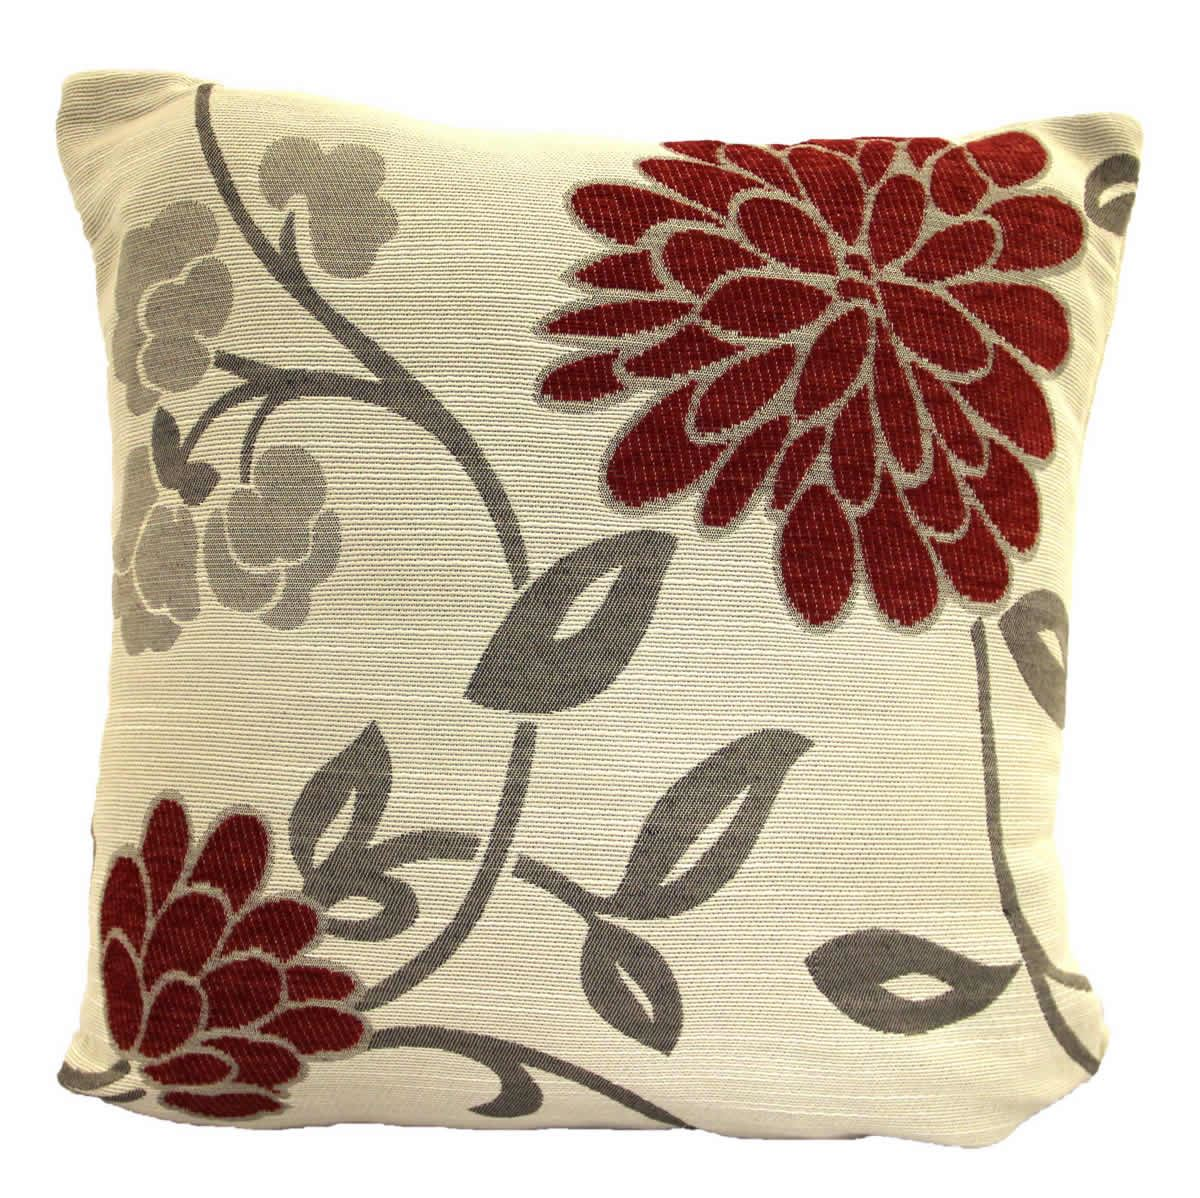 Chrystie luxury floral chenille cushion cover 18 x 18 for Luxury decorative throw pillows